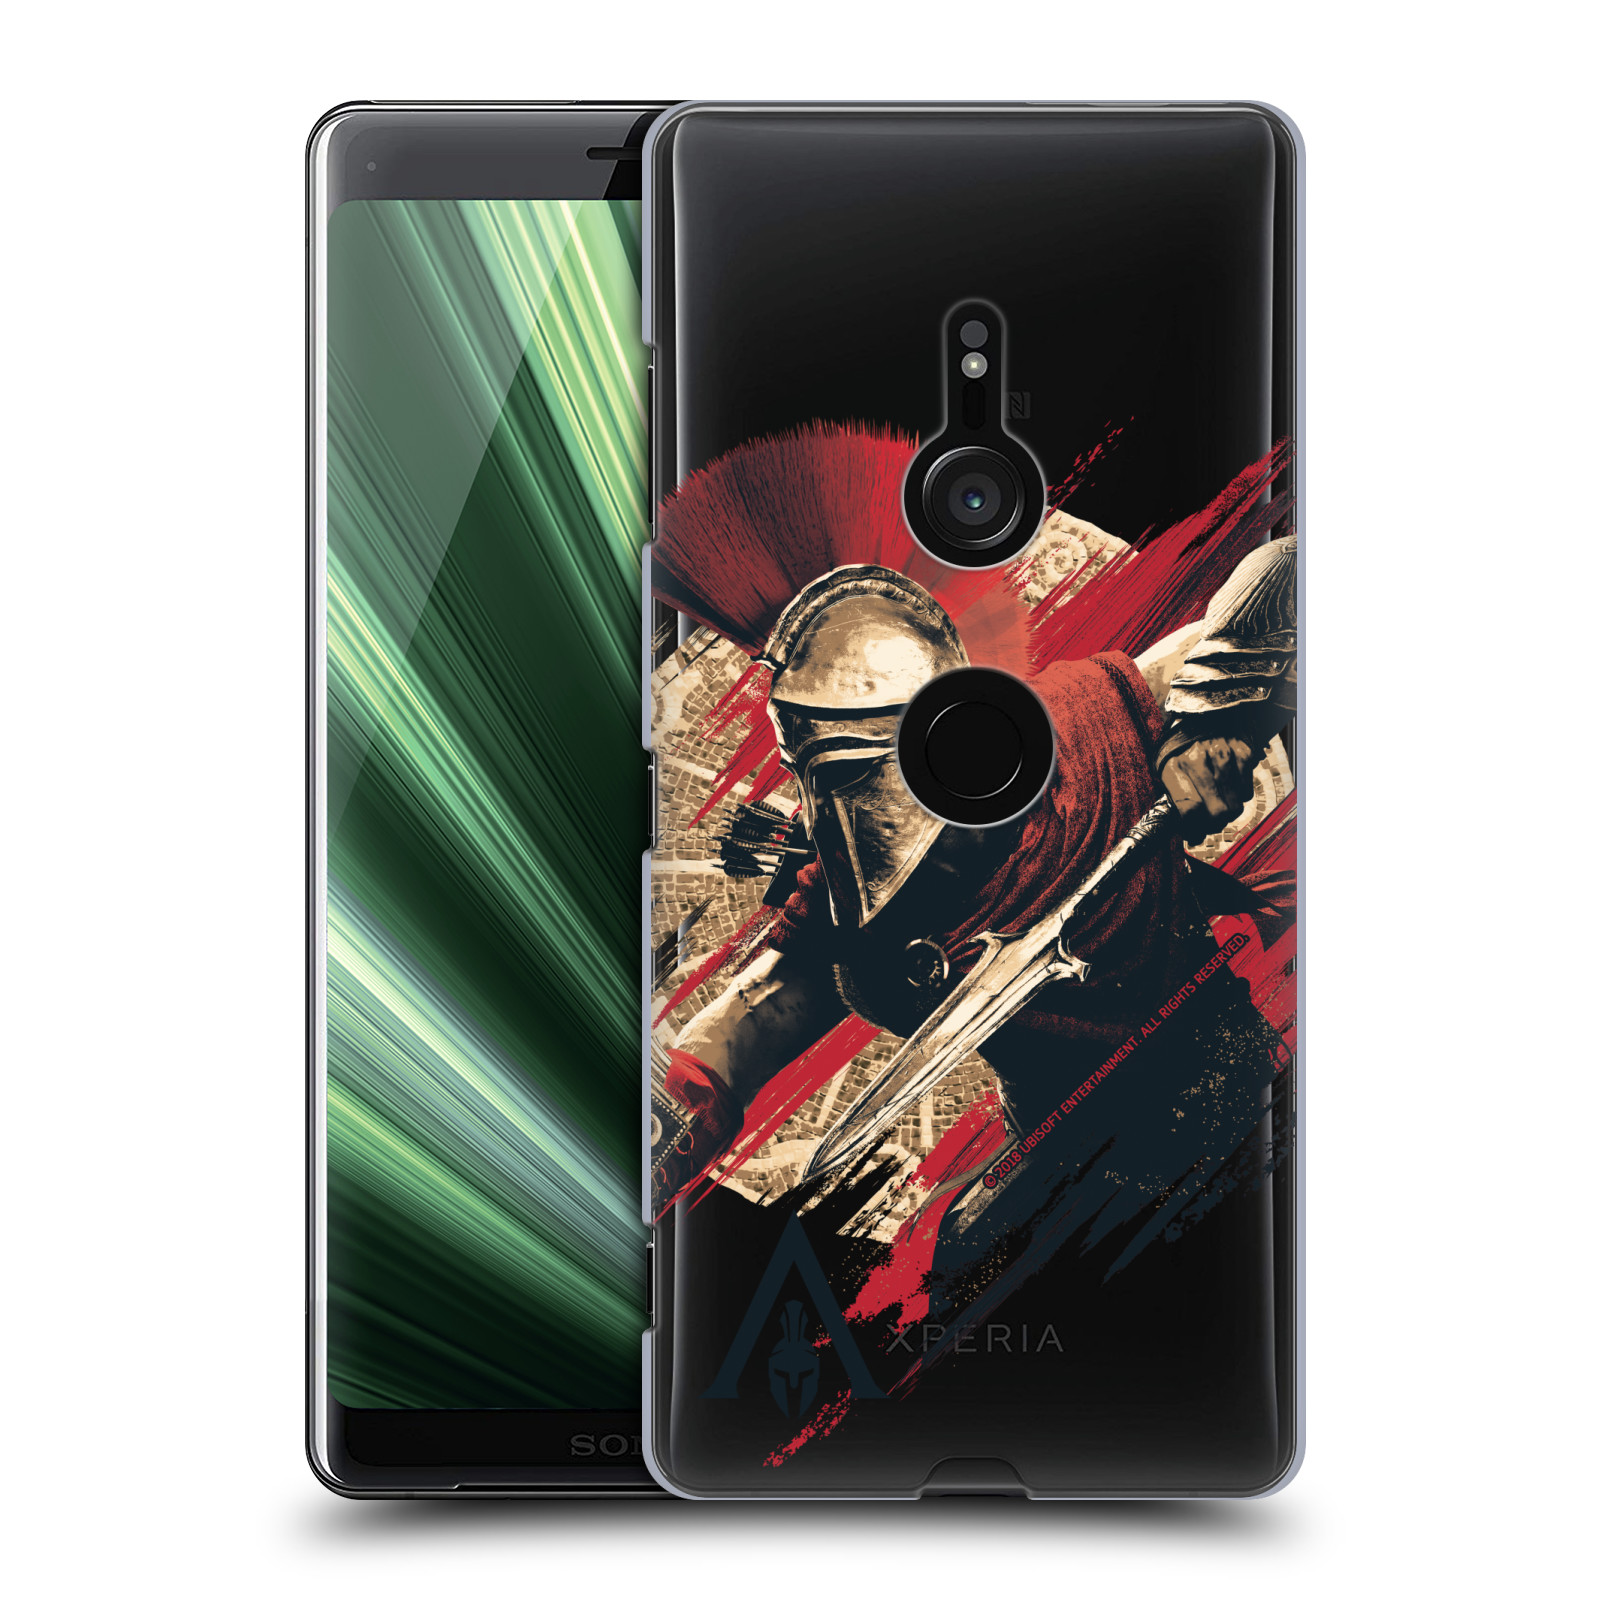 Pouzdro na mobil Sony Xperia XZ3 - HEAD CASE - Assassins Creed Odyssey Alexios s oštěpem